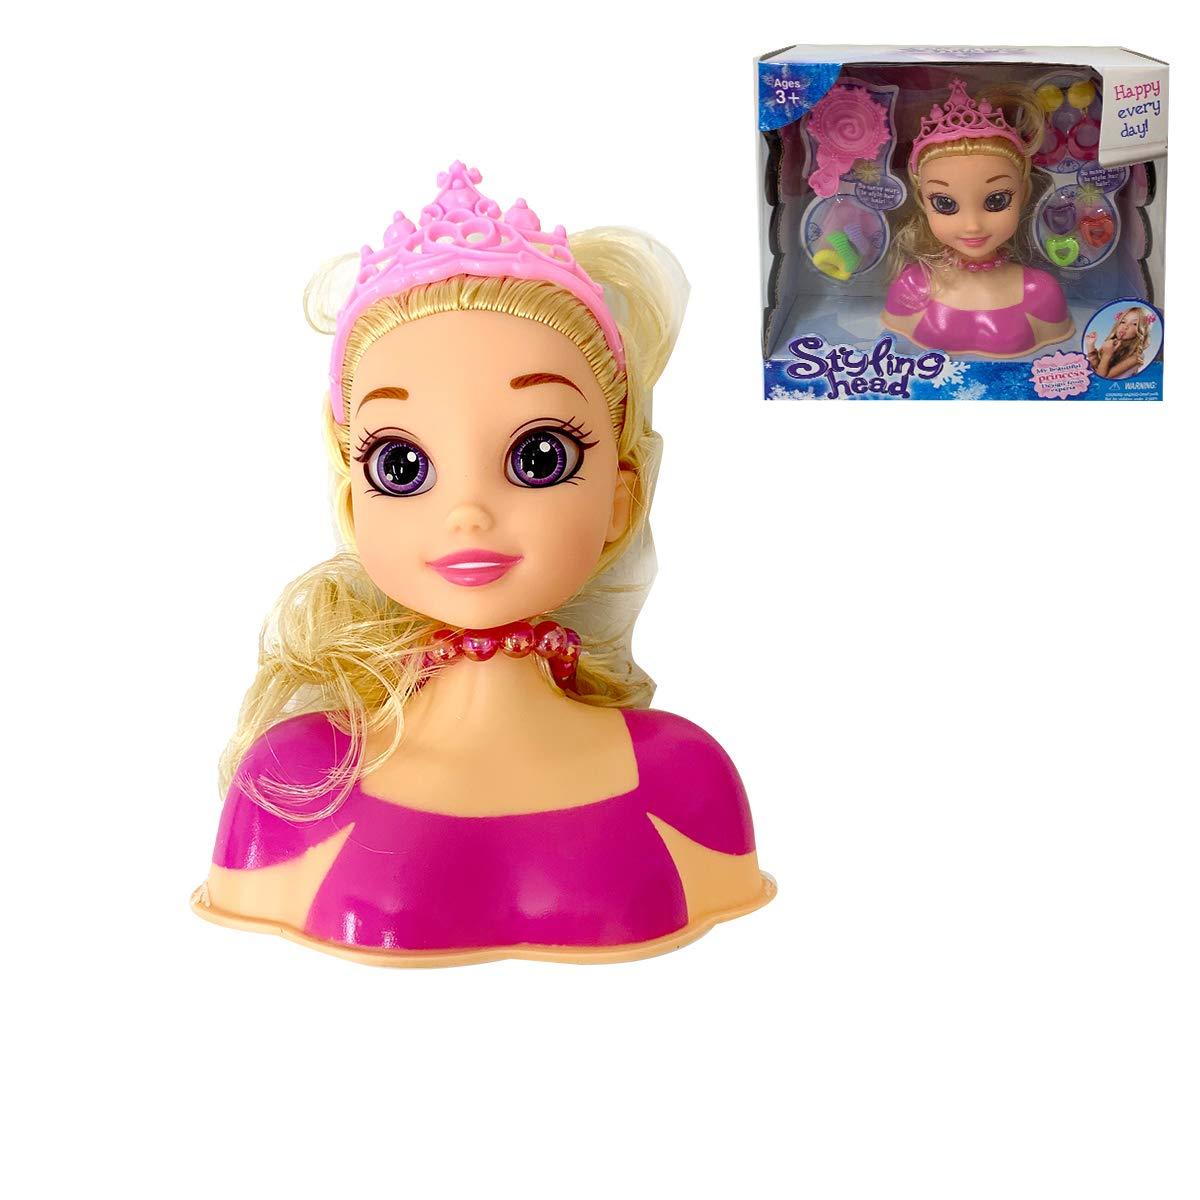 P&F Pretend Play Beauty Makeover Makeup & Hair Dressing Styling Head Doll with Tiara